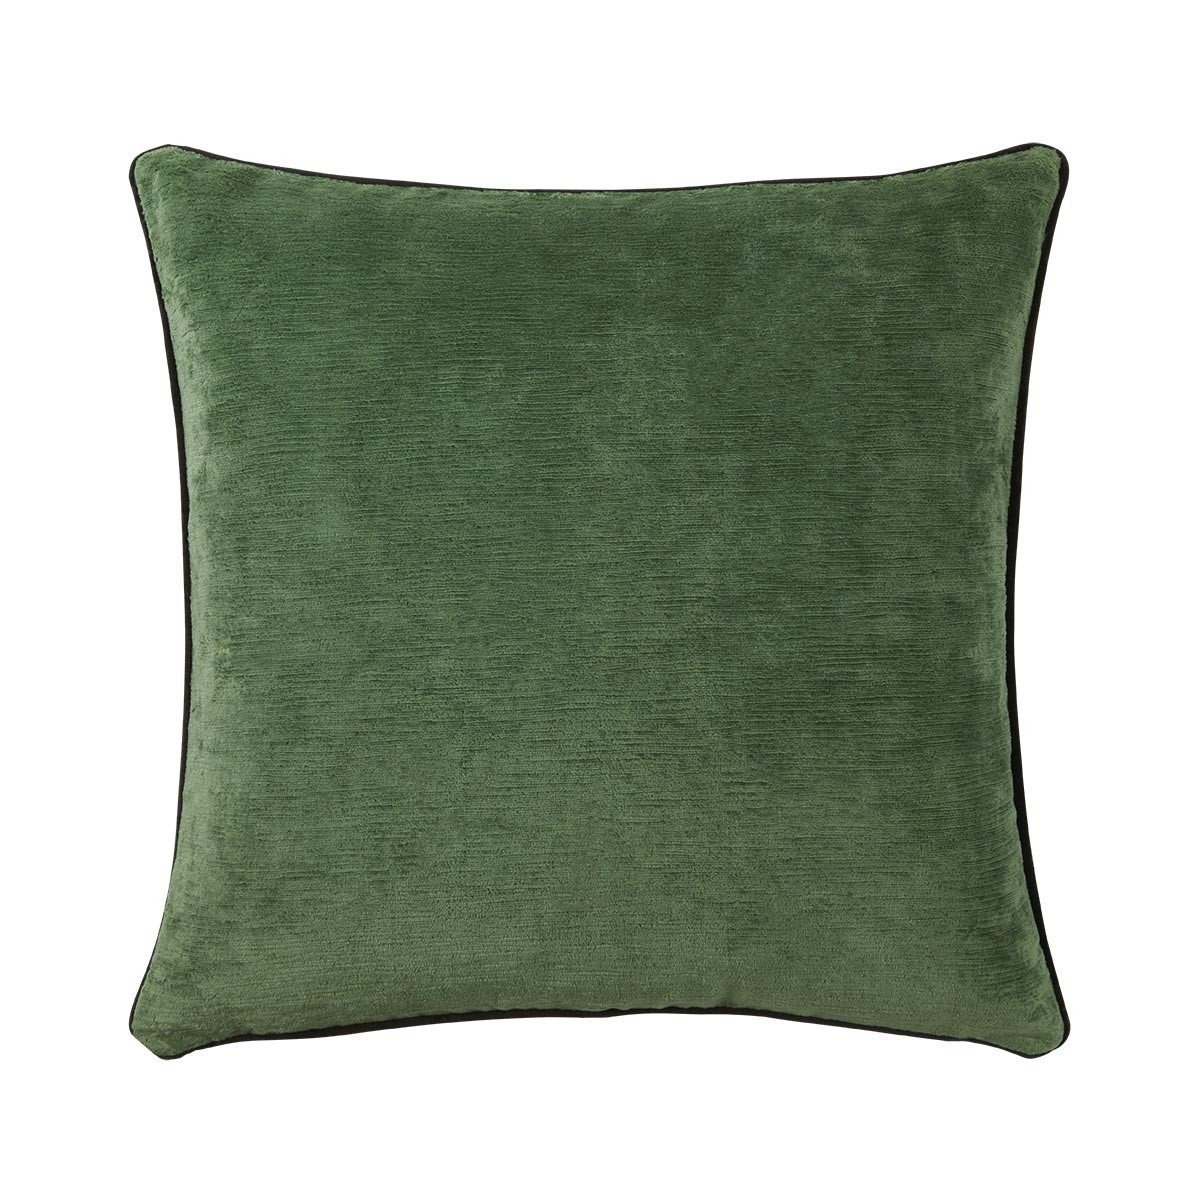 Boromee Menthe Decorative Pillow by Iosis